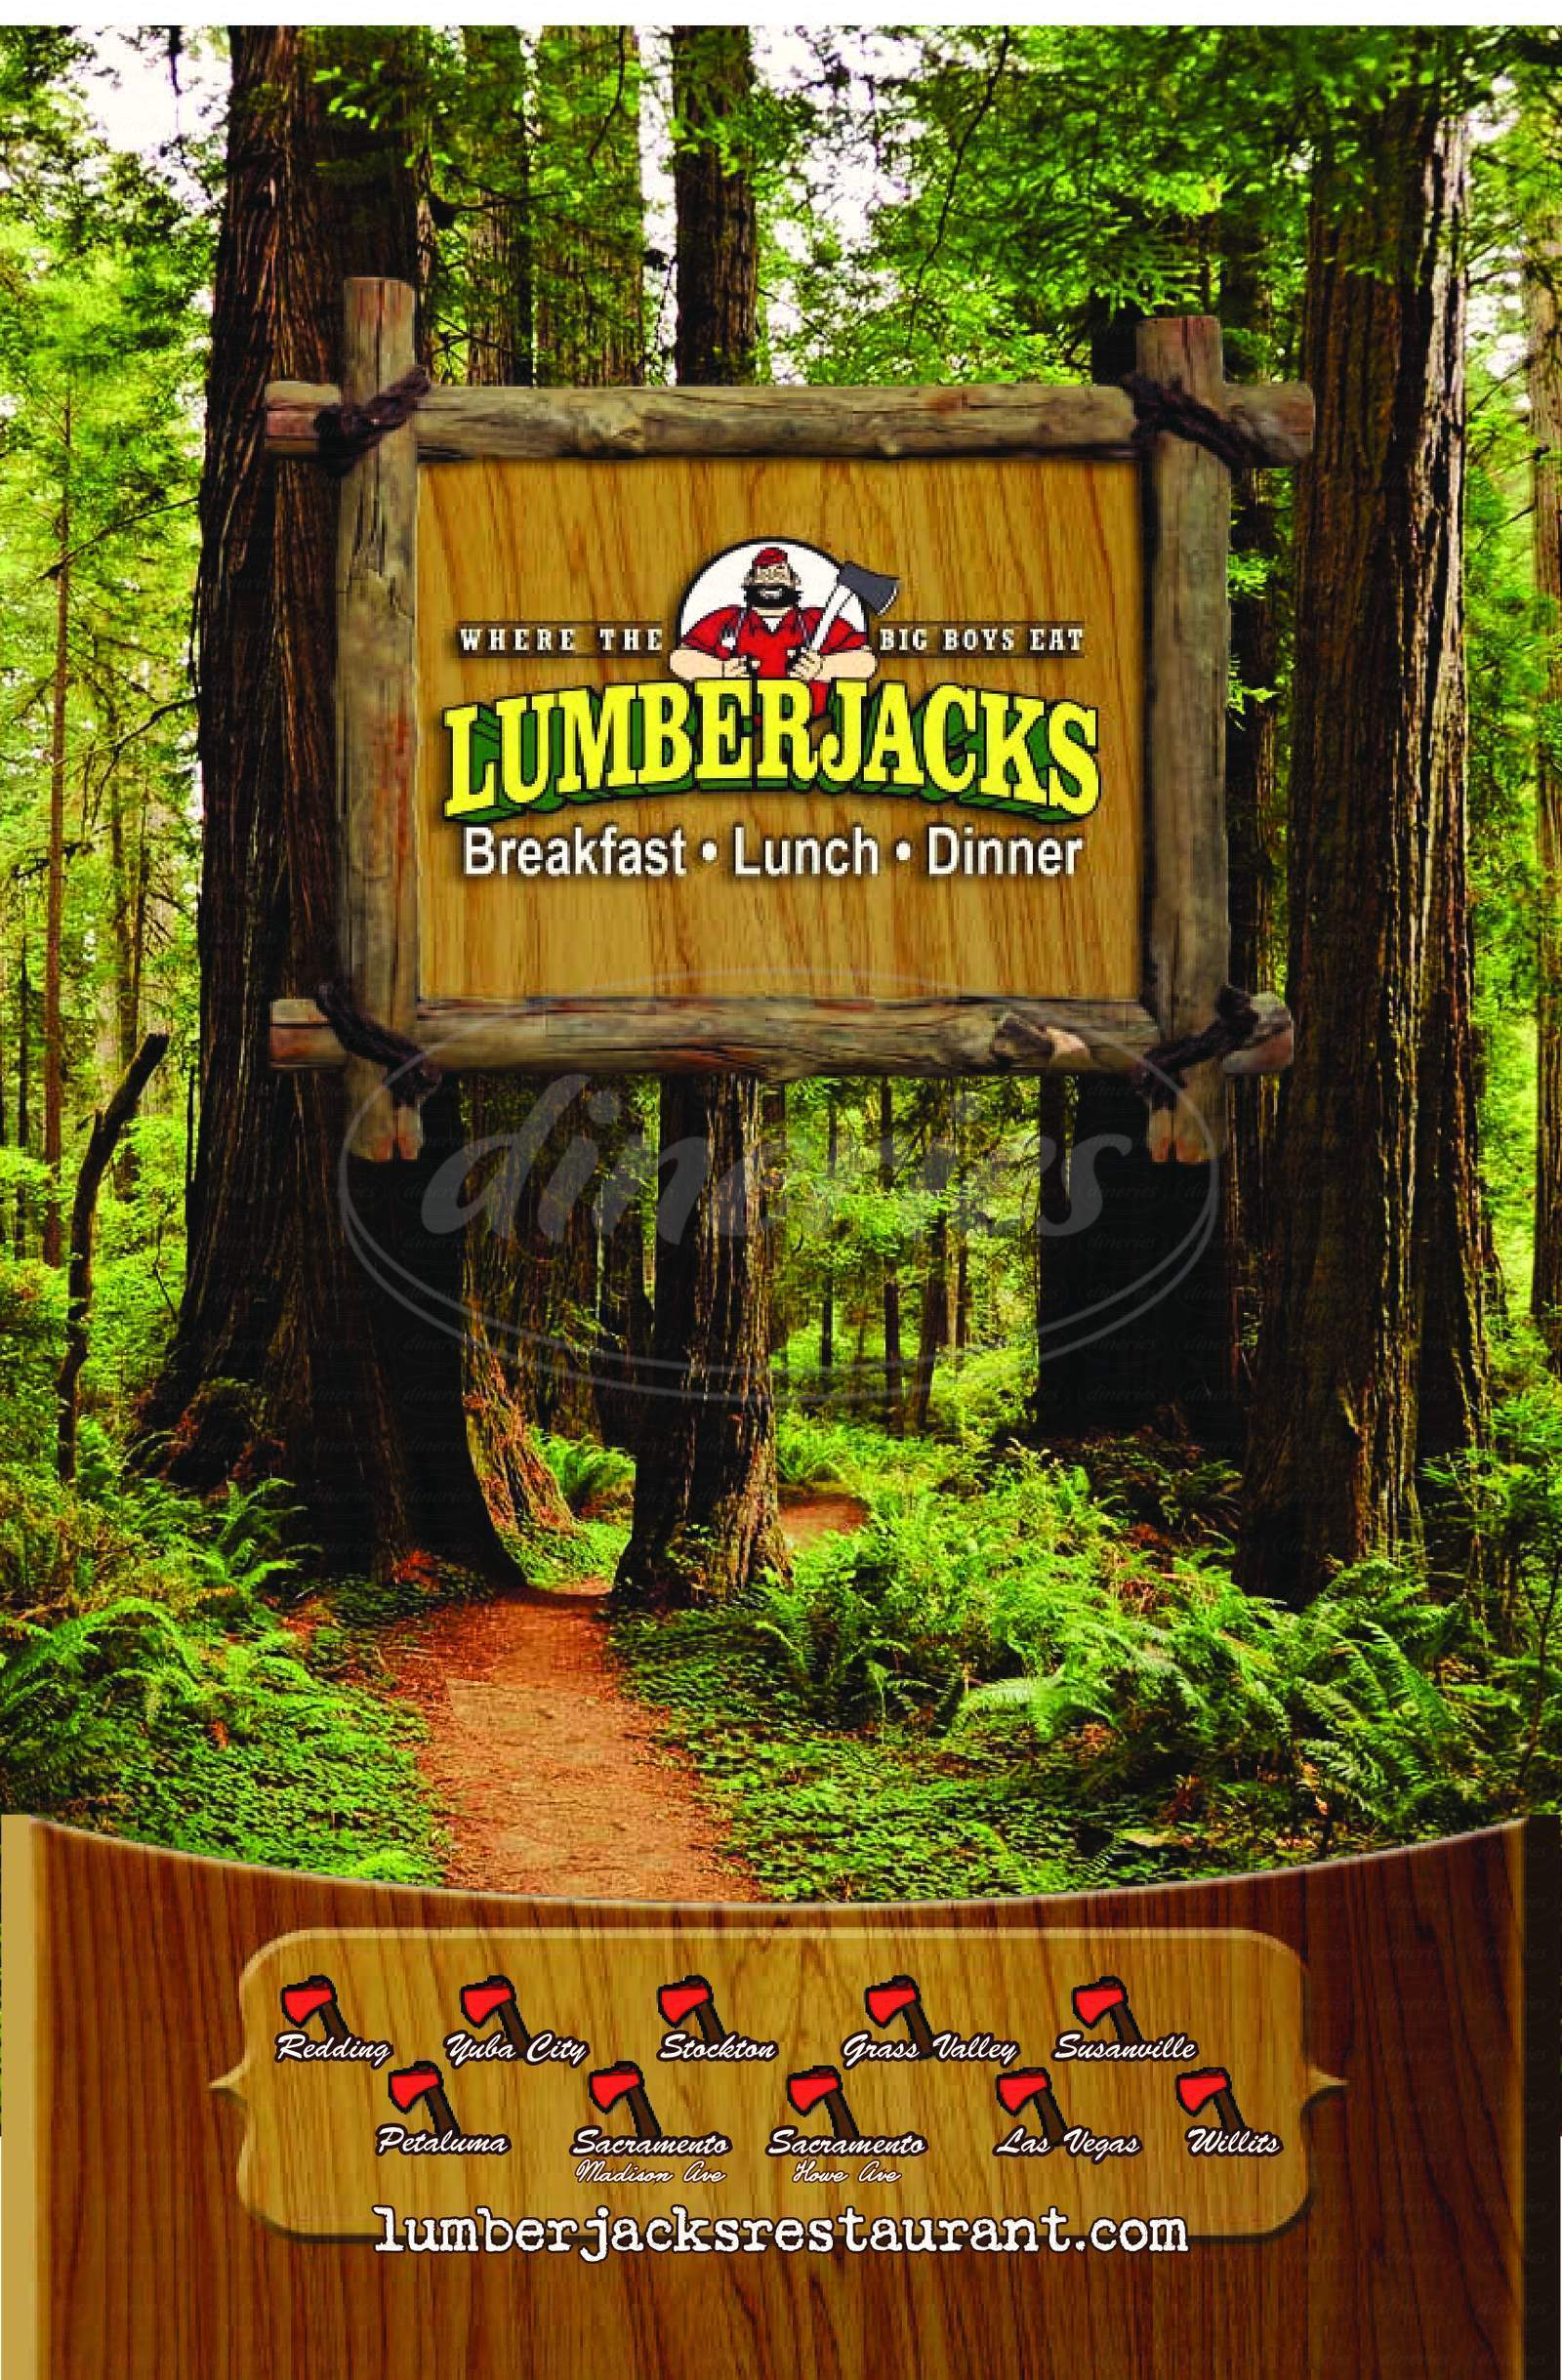 menu for Lumberjacks